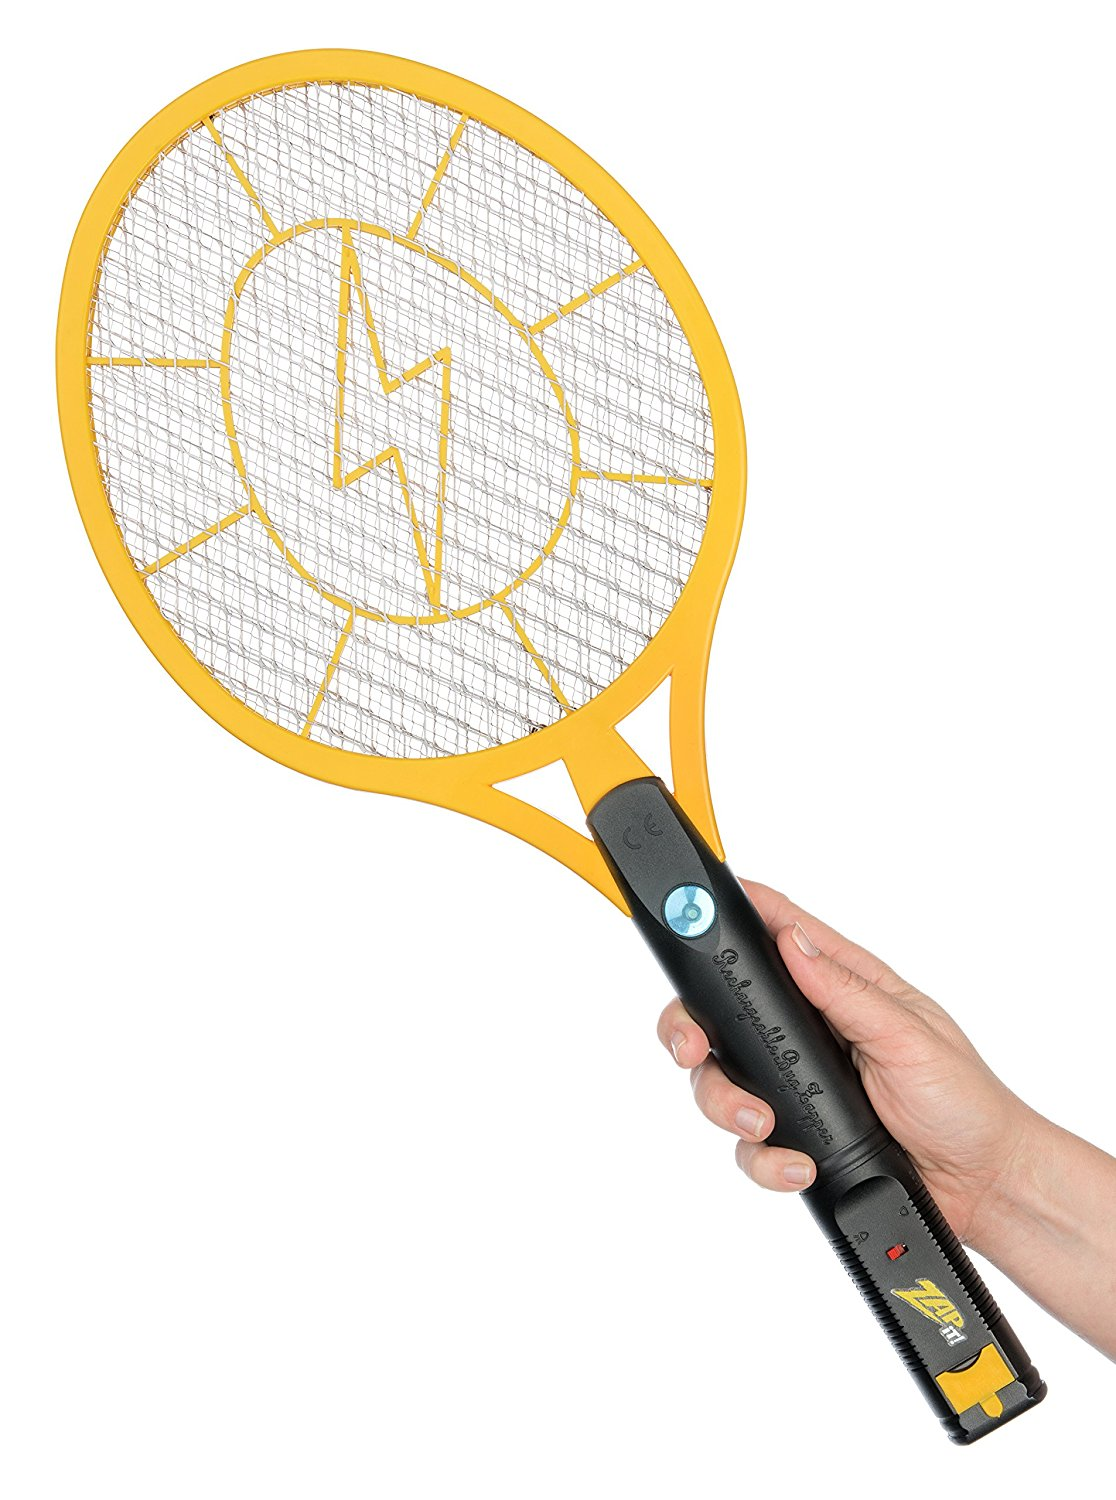 Best Bug Zappers, Electric Insect Killers